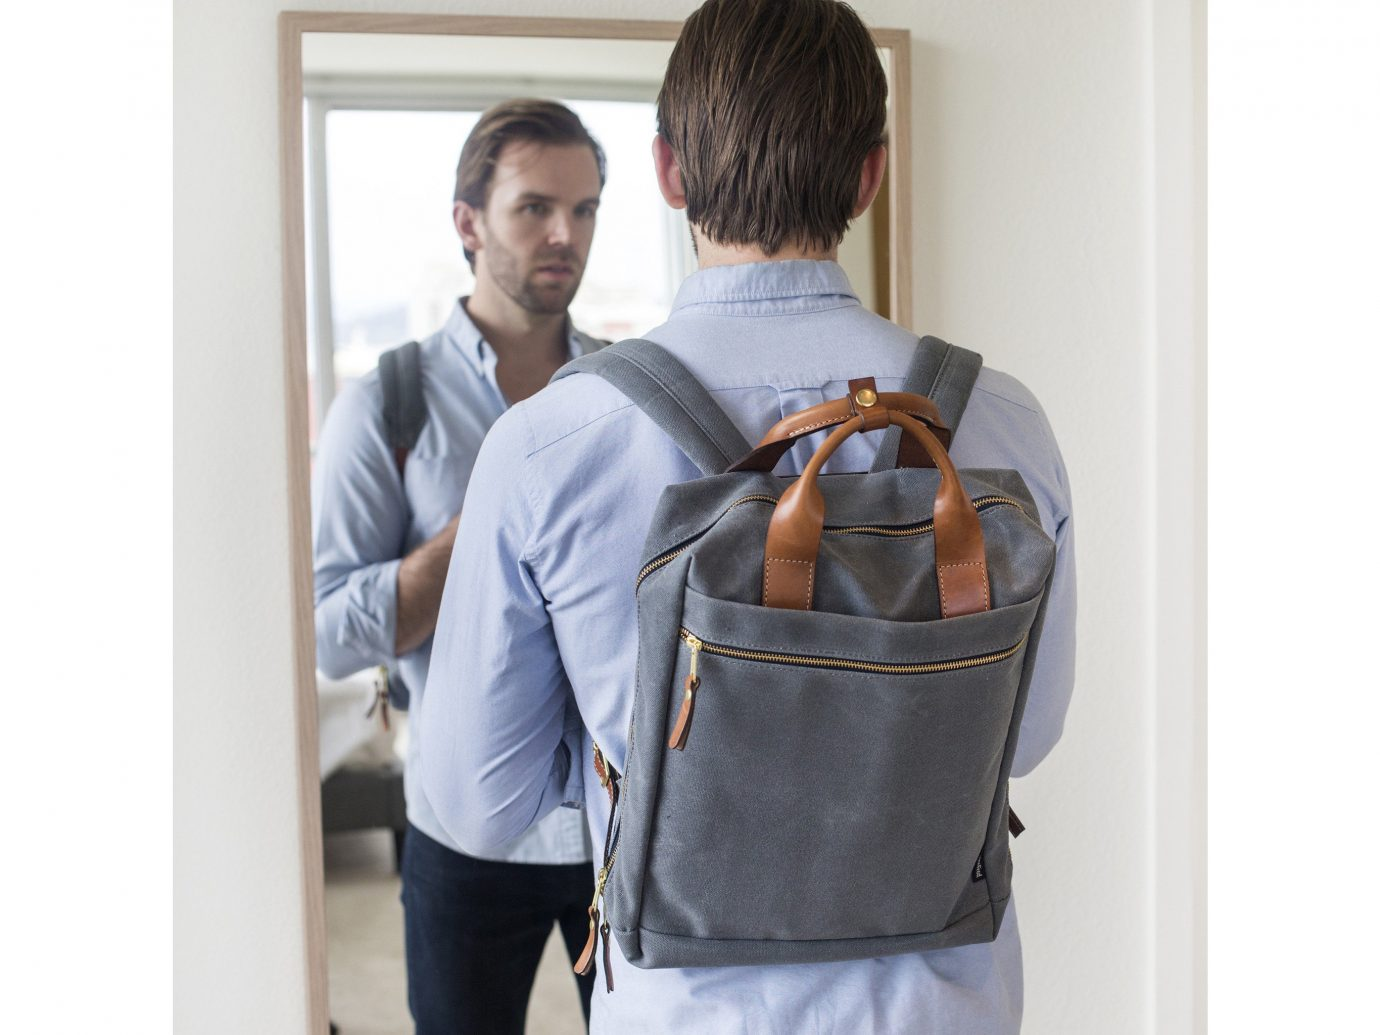 Style + Design person wall bag man shoulder product joint backpack product design luggage & bags